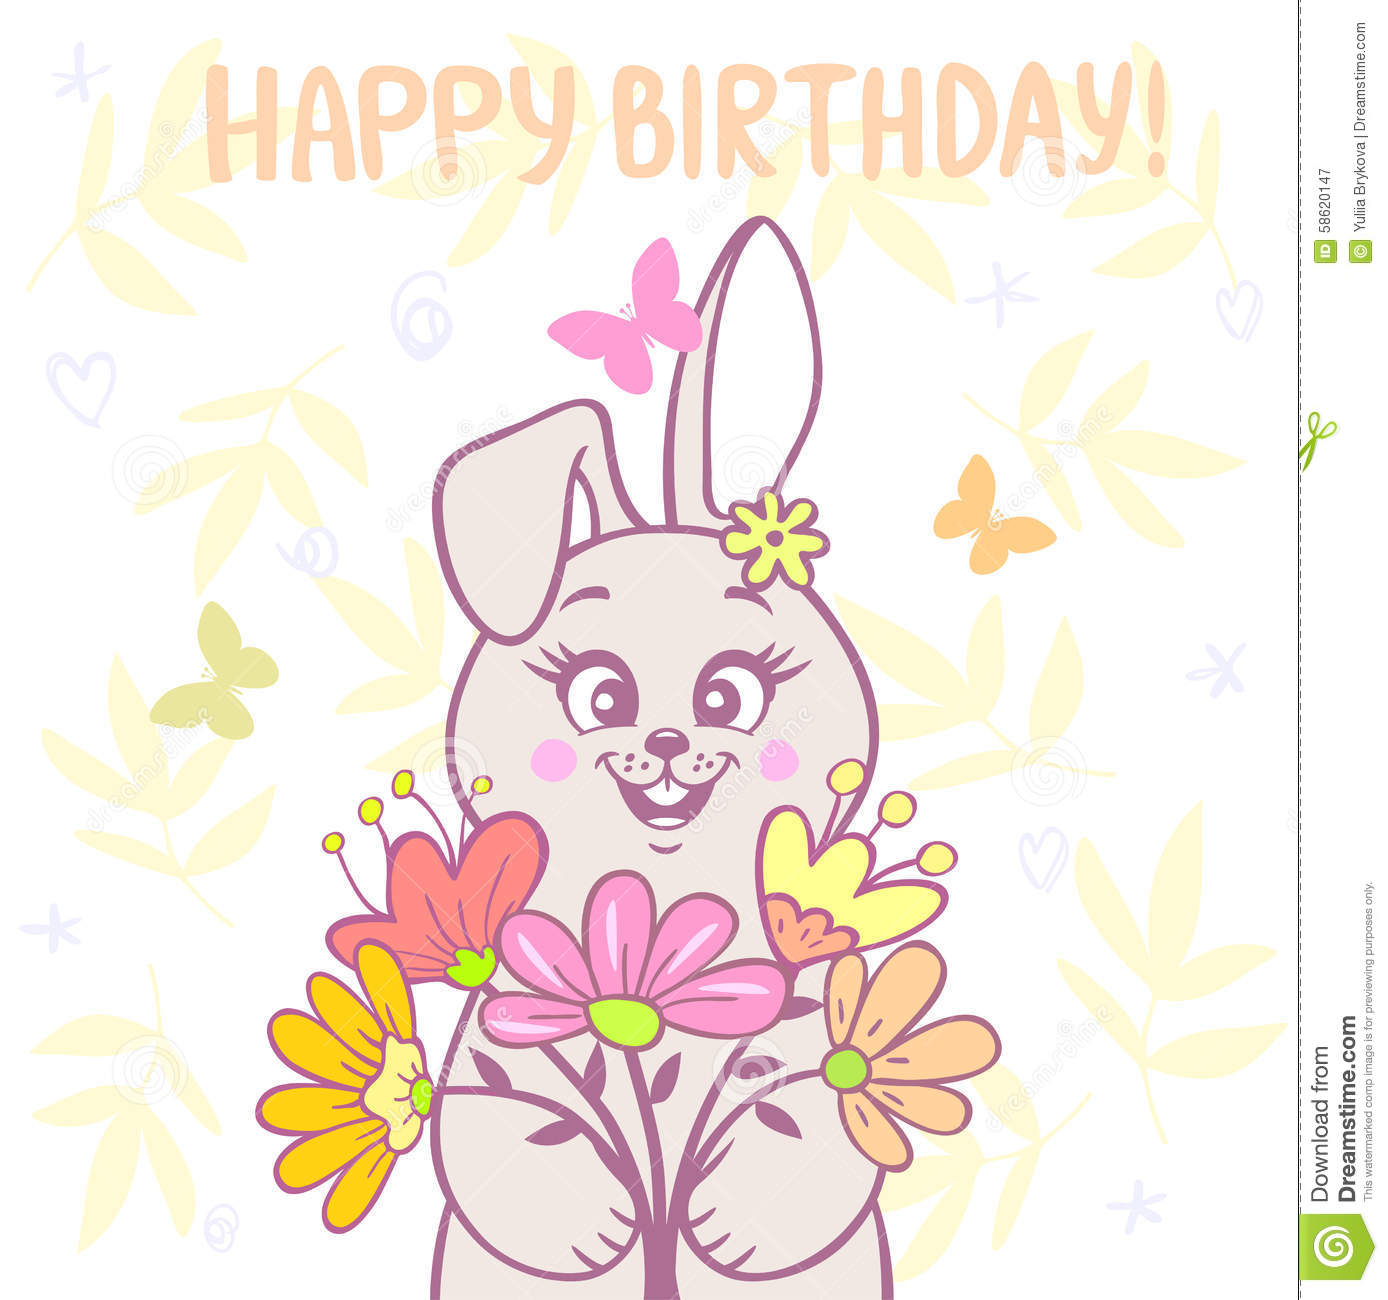 Bunny And Flowers Stock Vector Illustration Of Cute 58620147